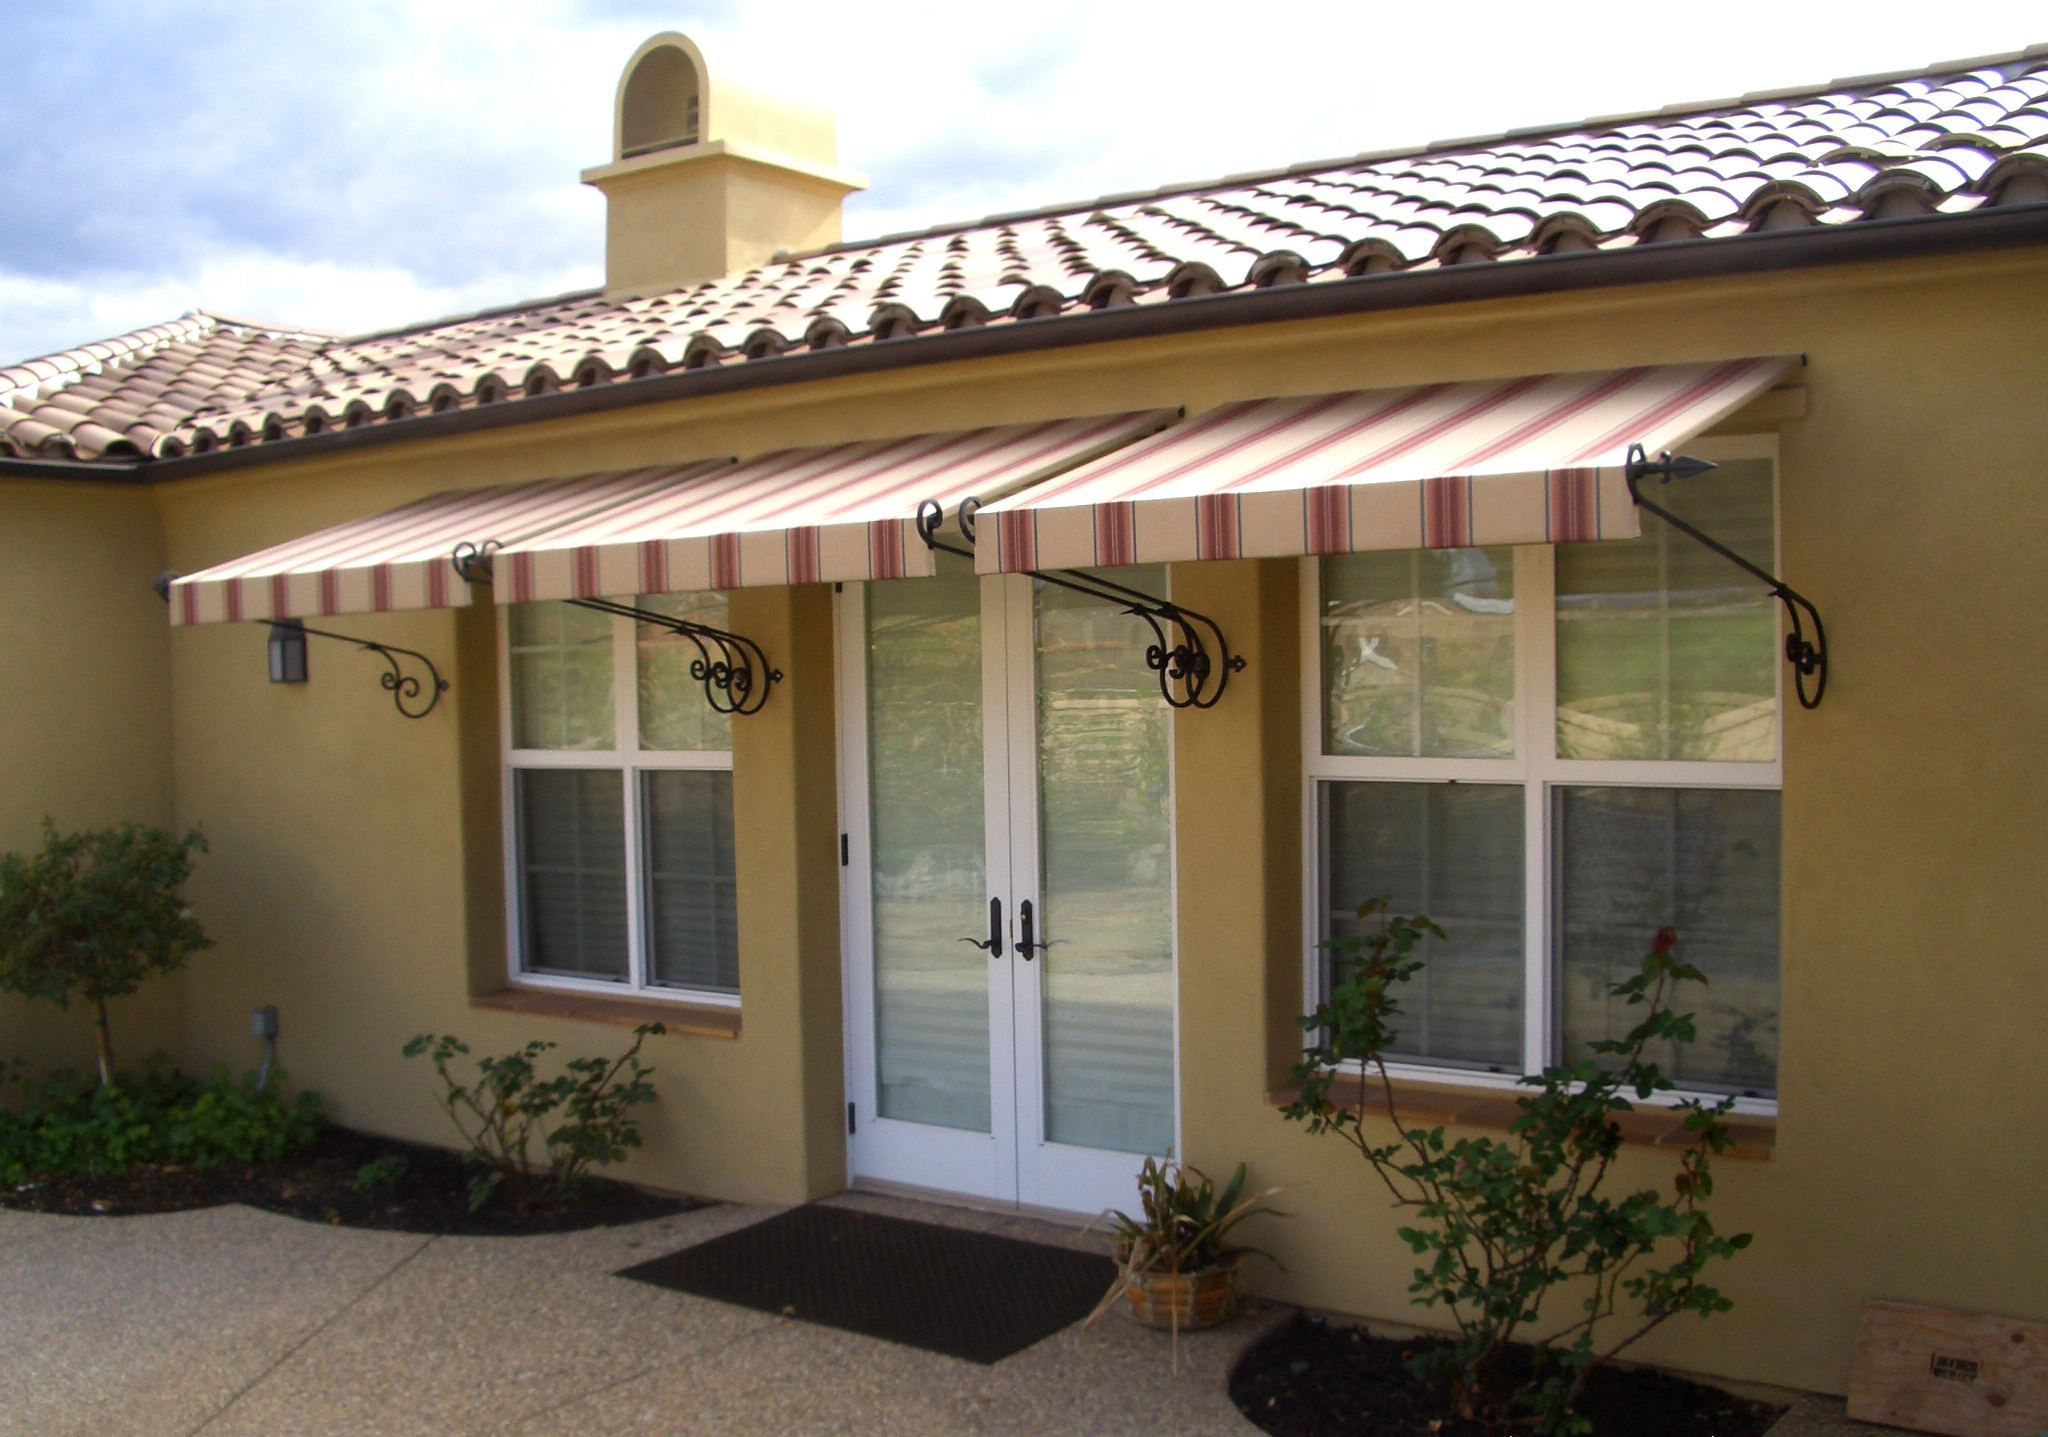 louisville serving awnings accent and shade awning ward southern llc ky metro